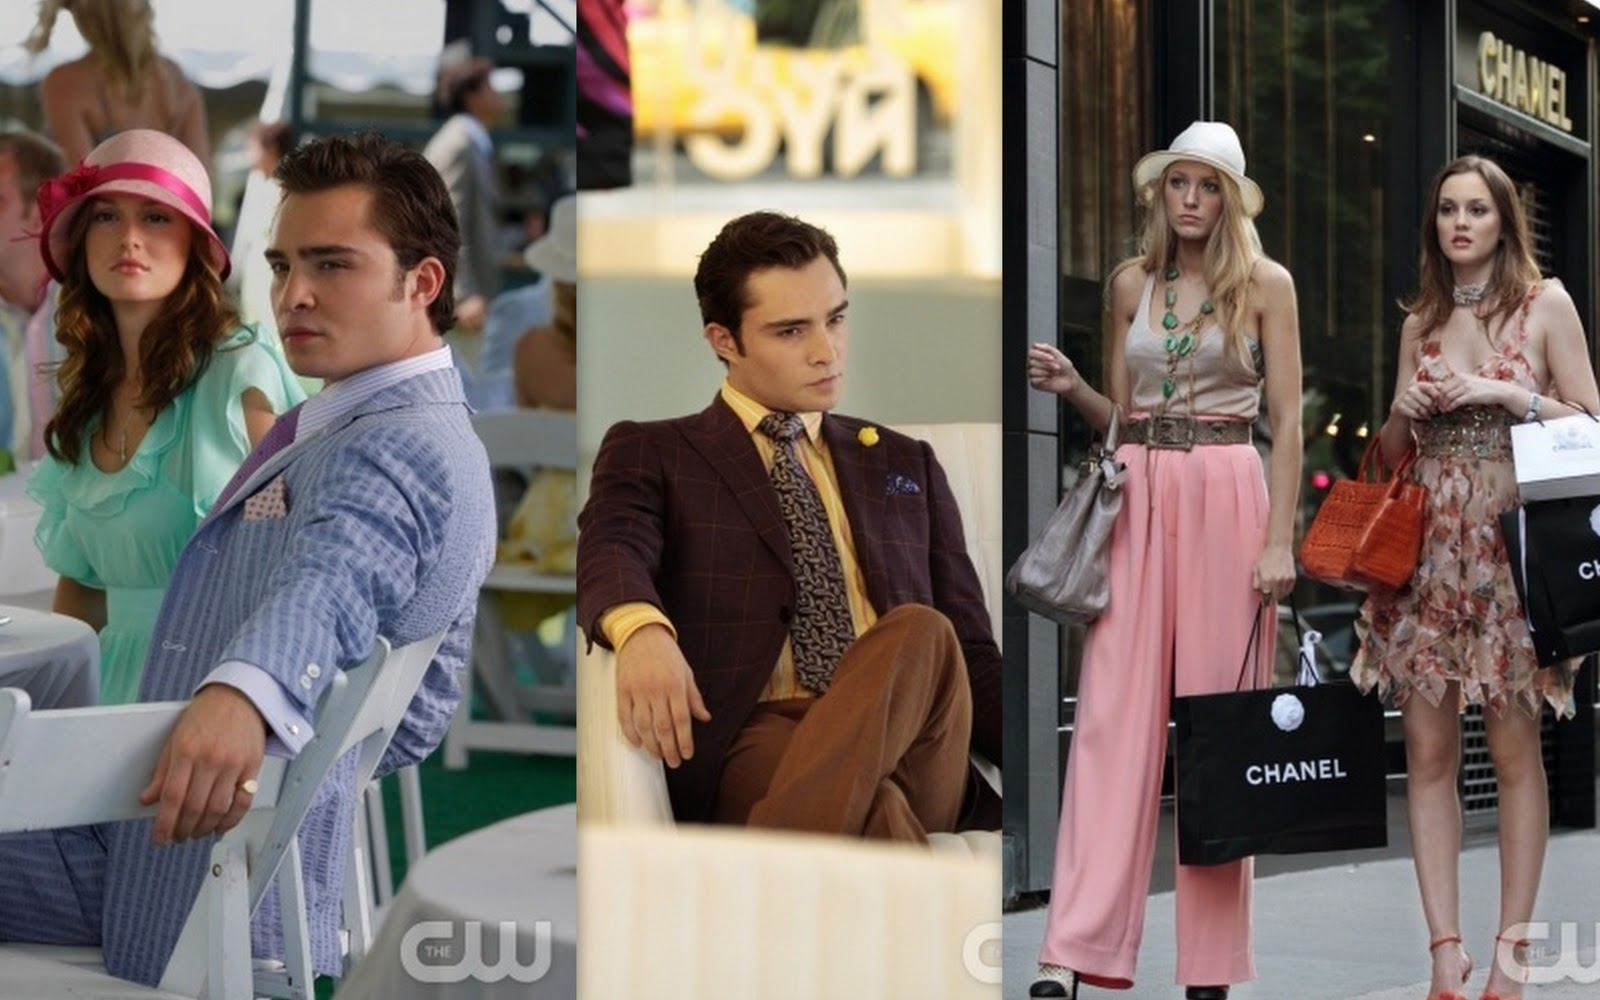 Gossip girl sweepstakes and giveaways